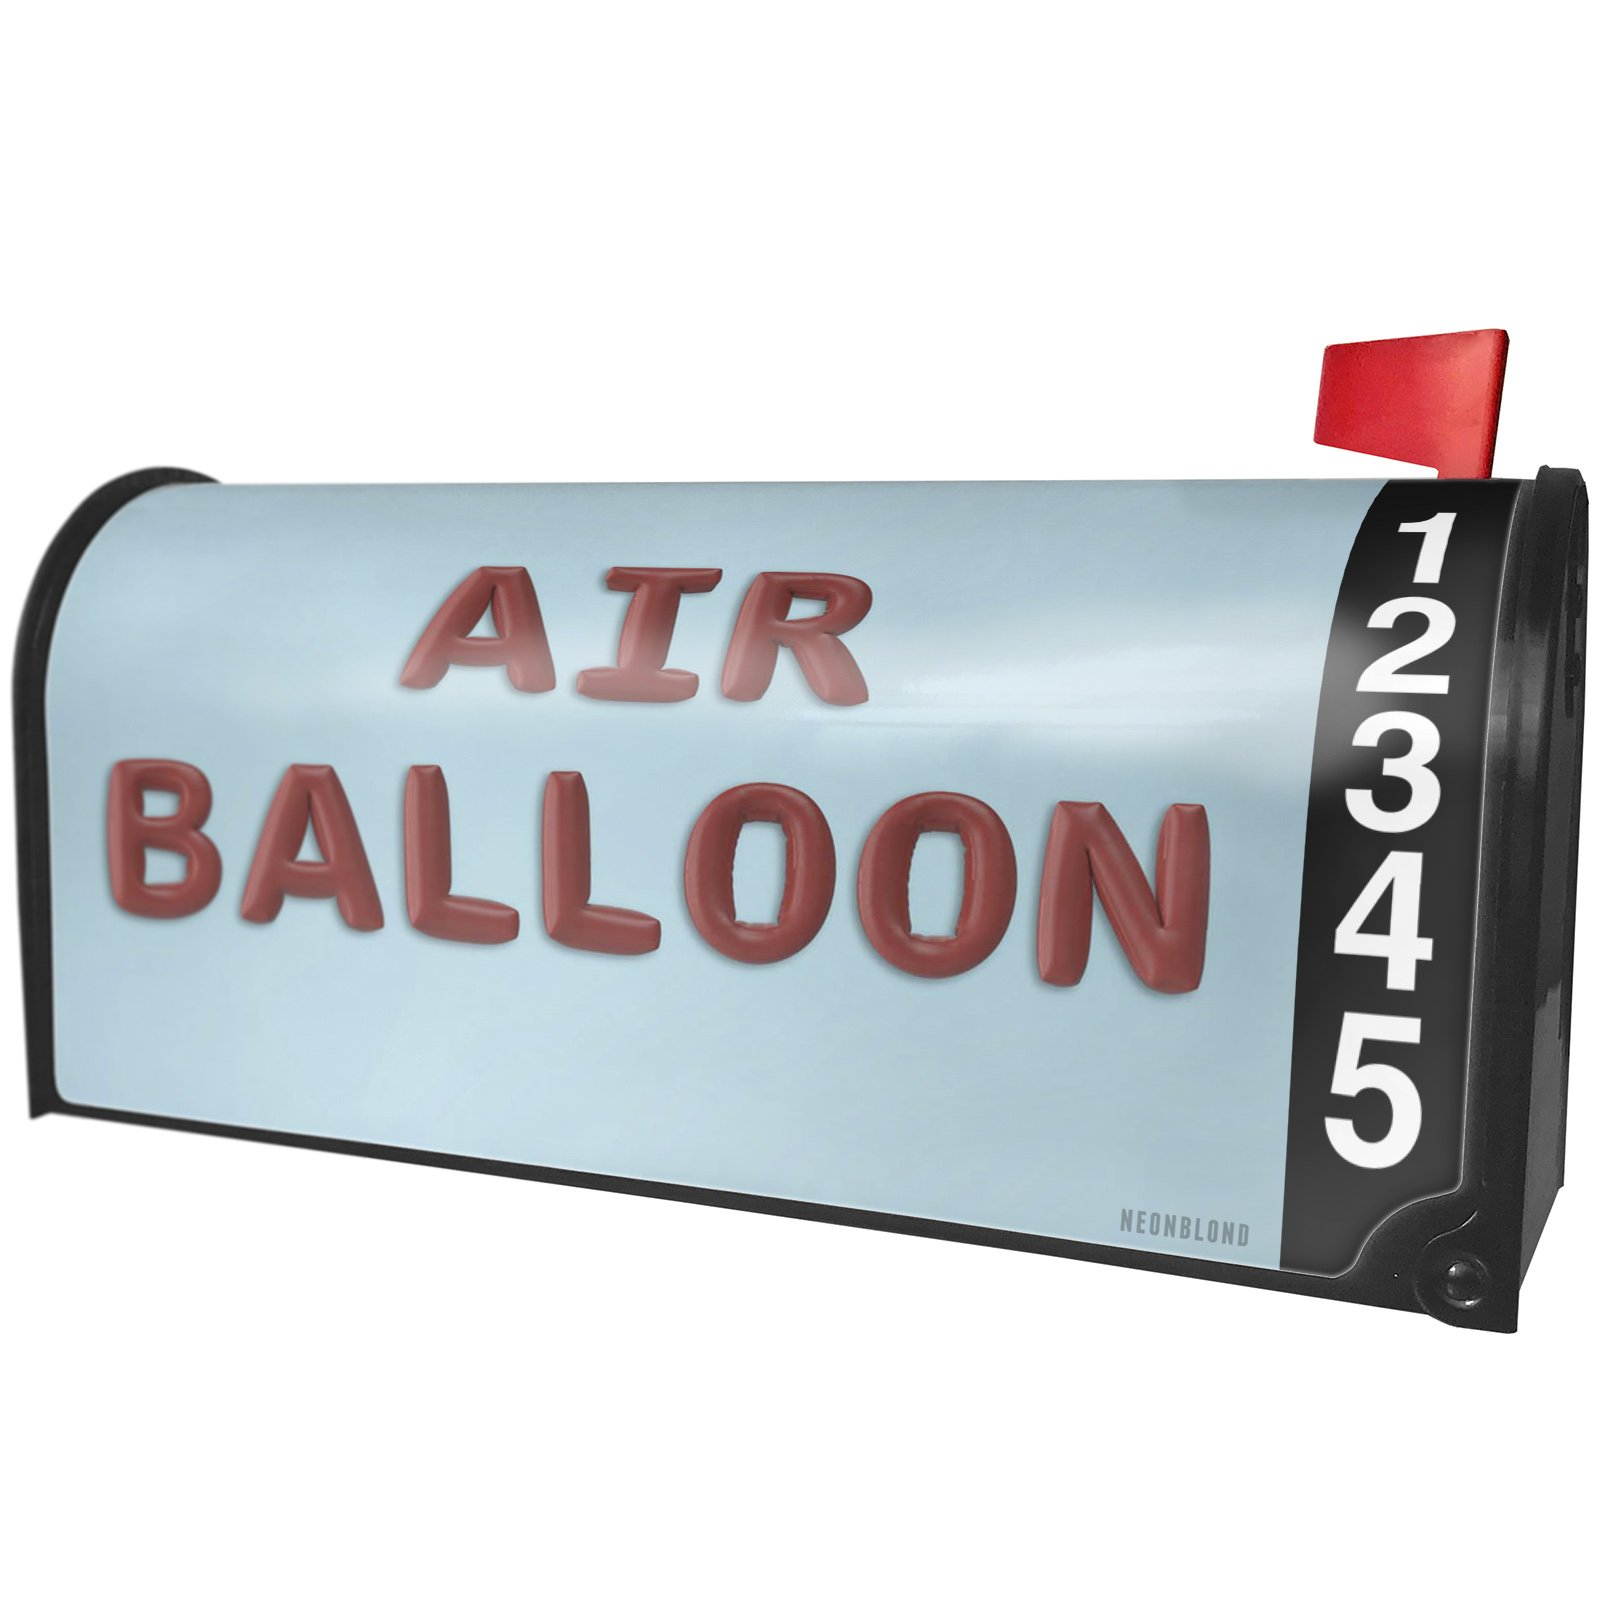 NEONBLOND Air Balloon Party Balloon Magnetic Mailbox Cover Custom Numbers